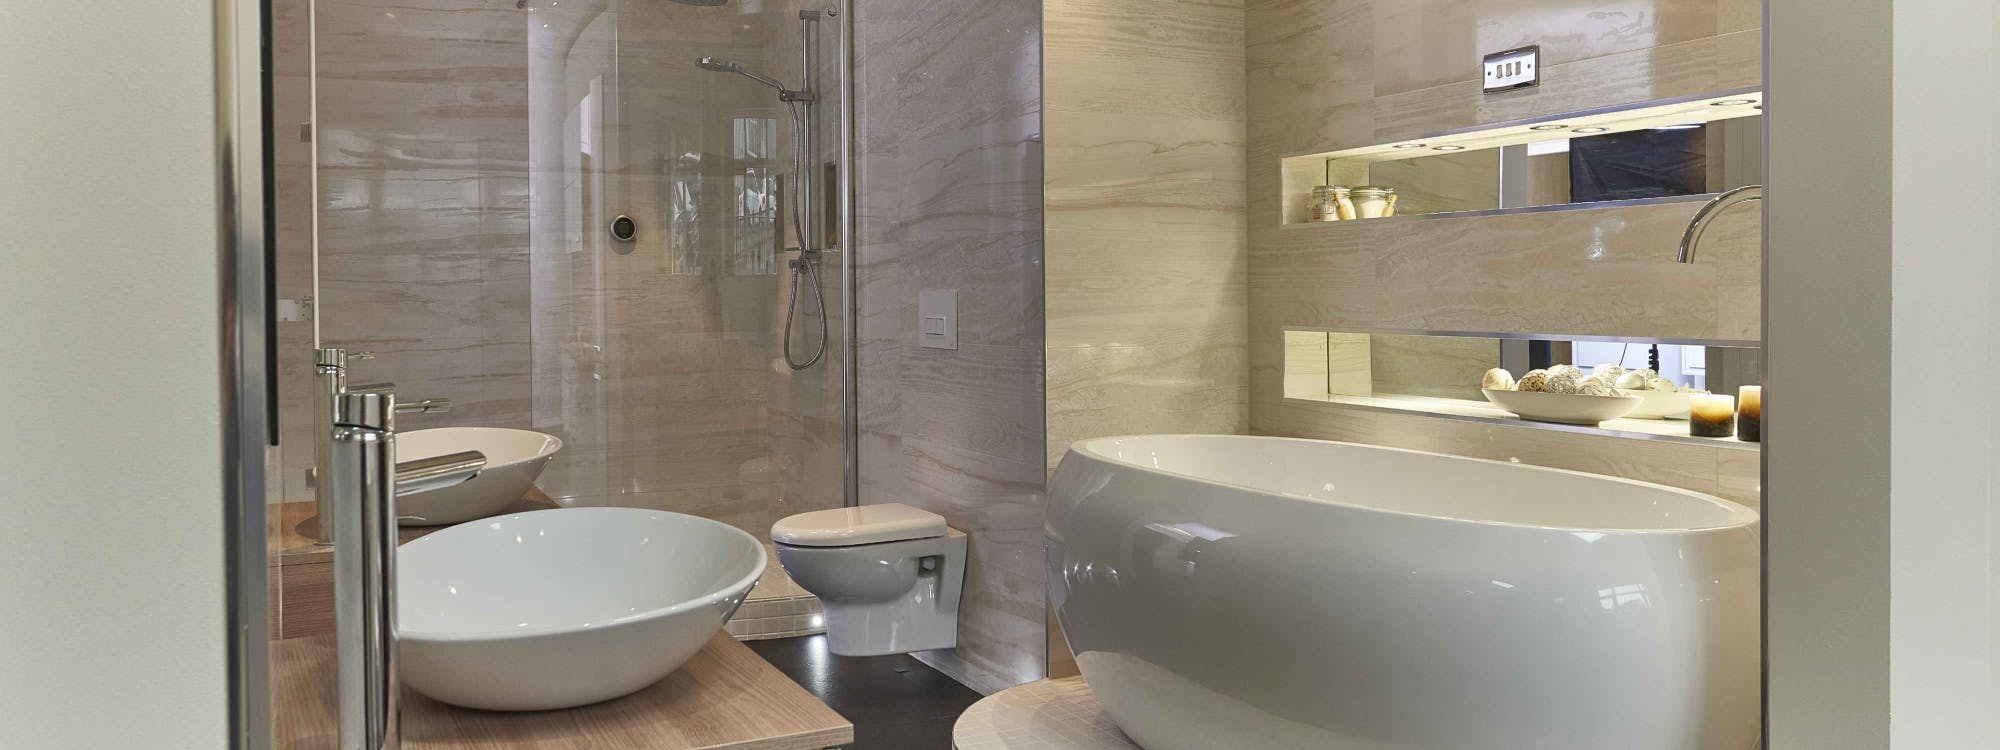 Make your dream bathroom a reality with a visit to our Leeds Bathroom Showroom.